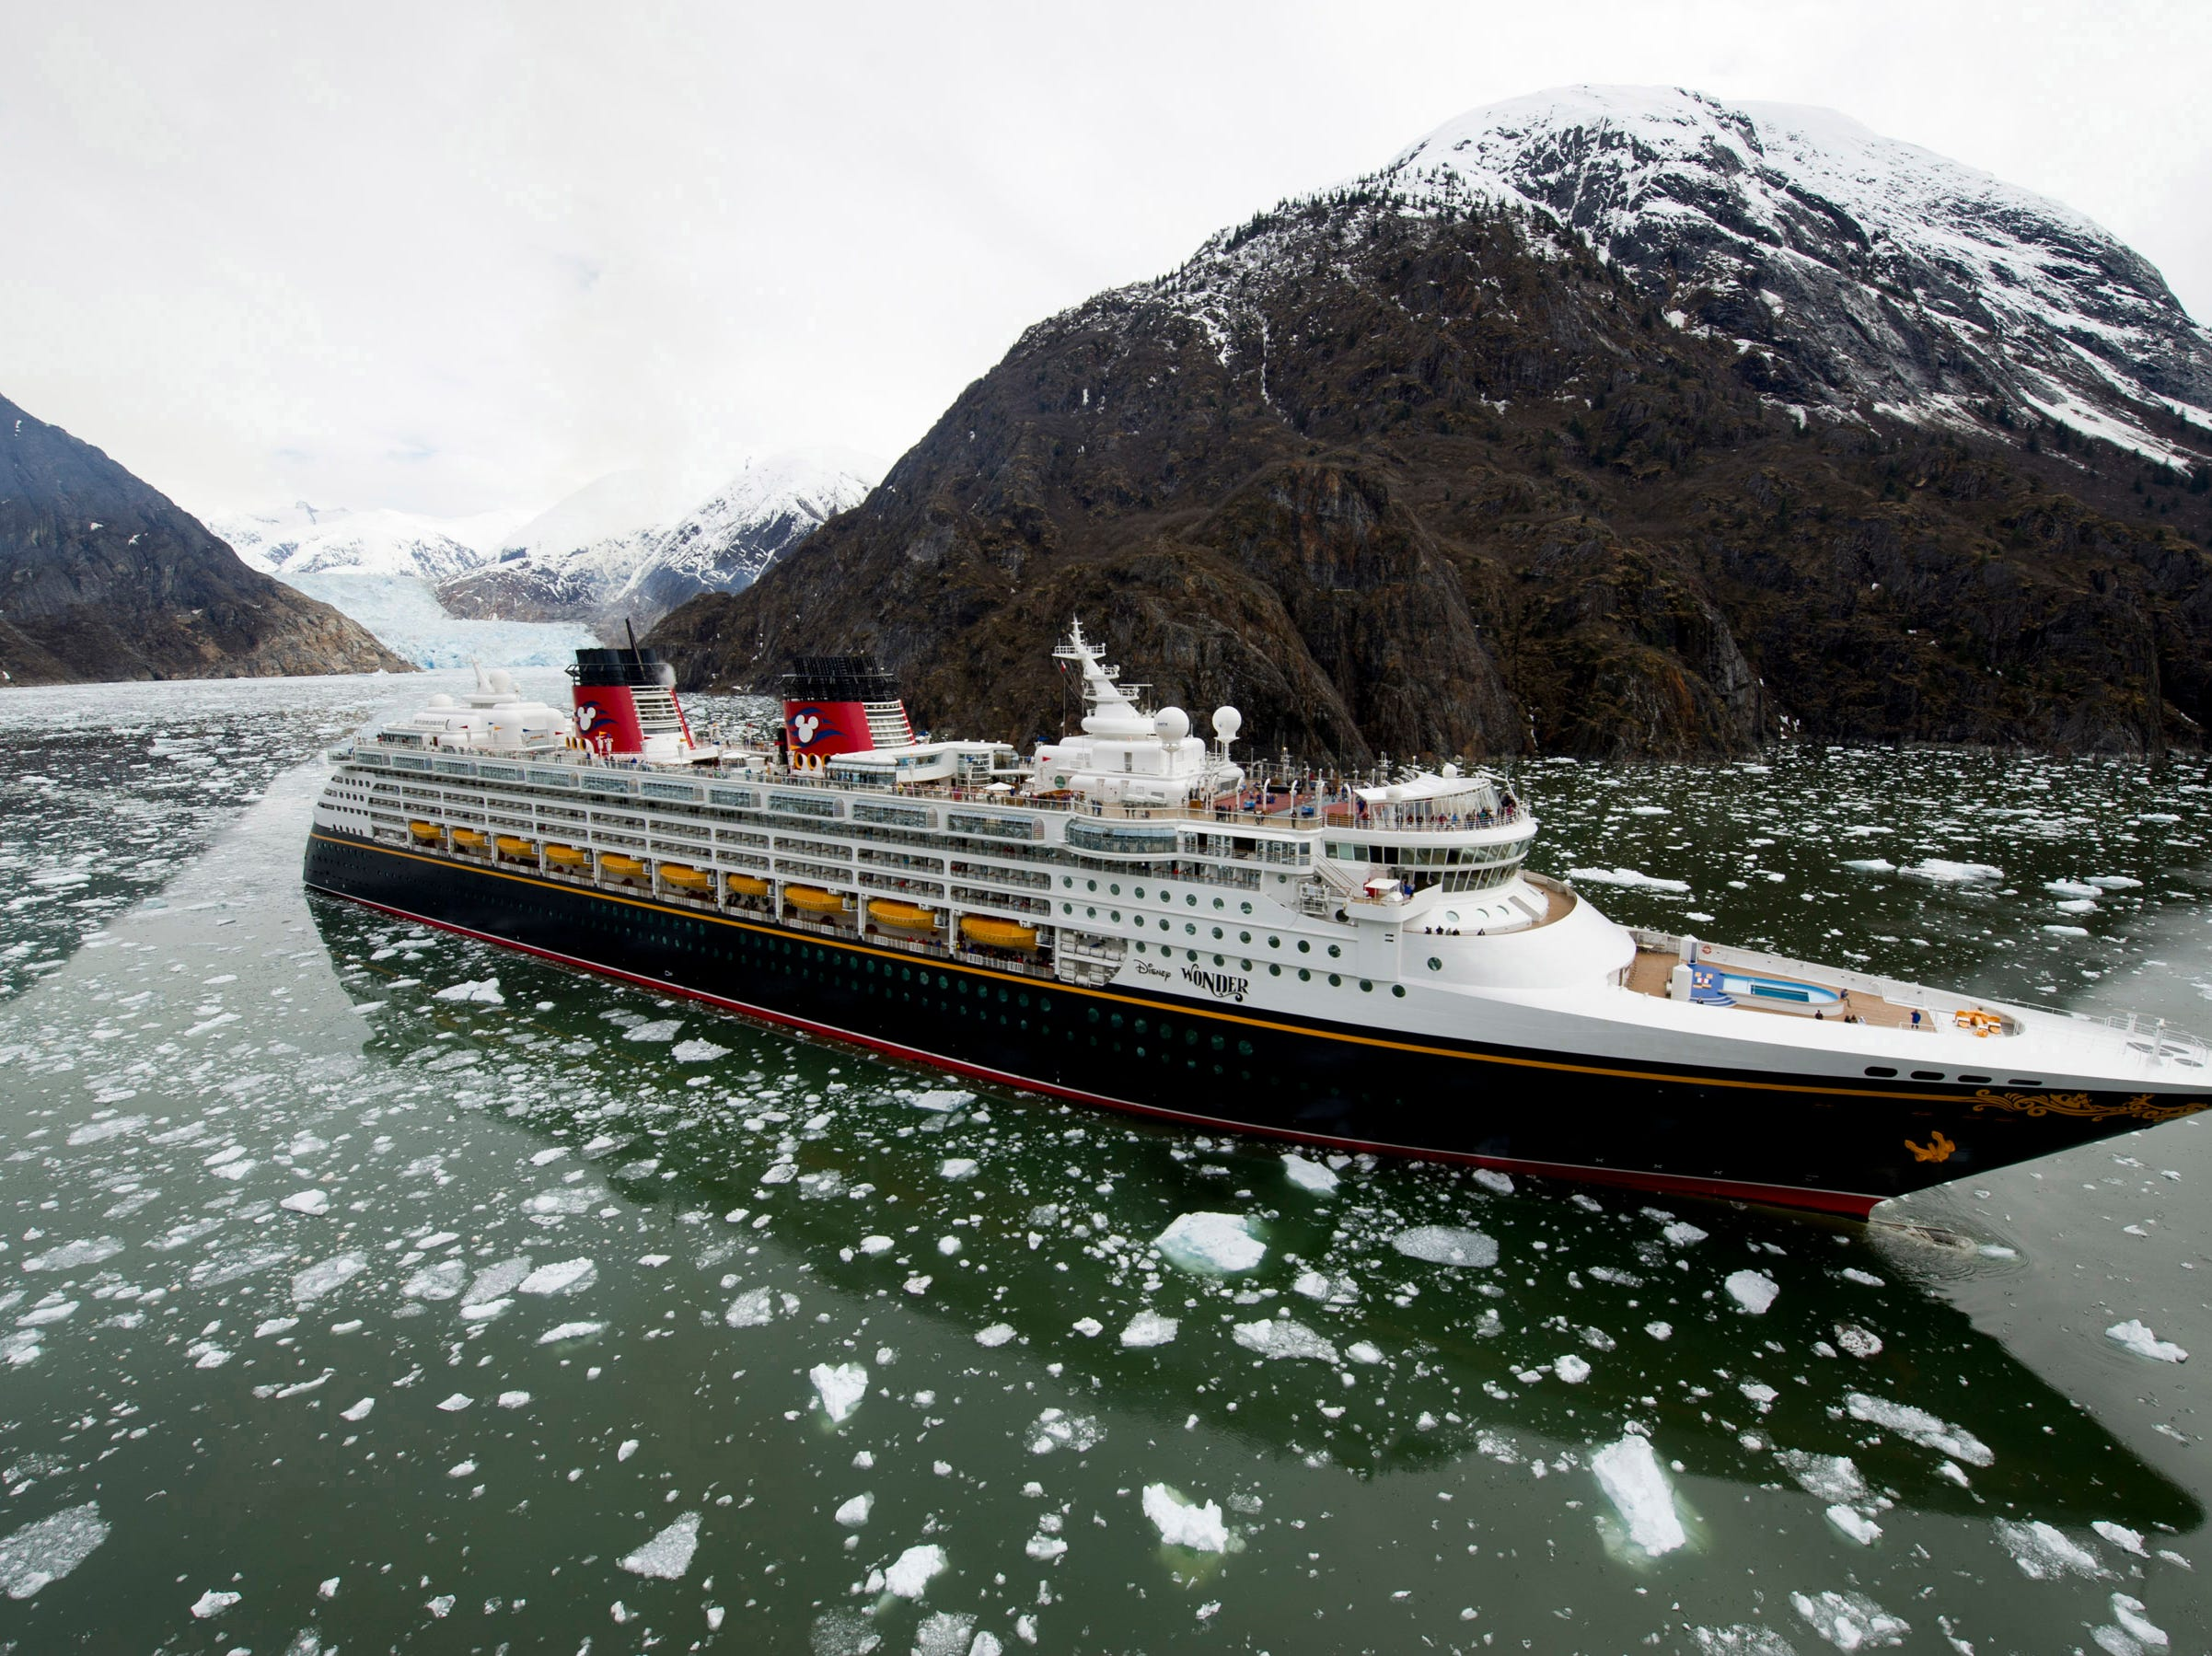 In the summer of 2020, the Disney Wonder will return to Alaska for the summer season, opening up a world of breathtaking natural vistas, magnificent glaciers and awe-inspiring wildlife on a series of seven-night sailings.